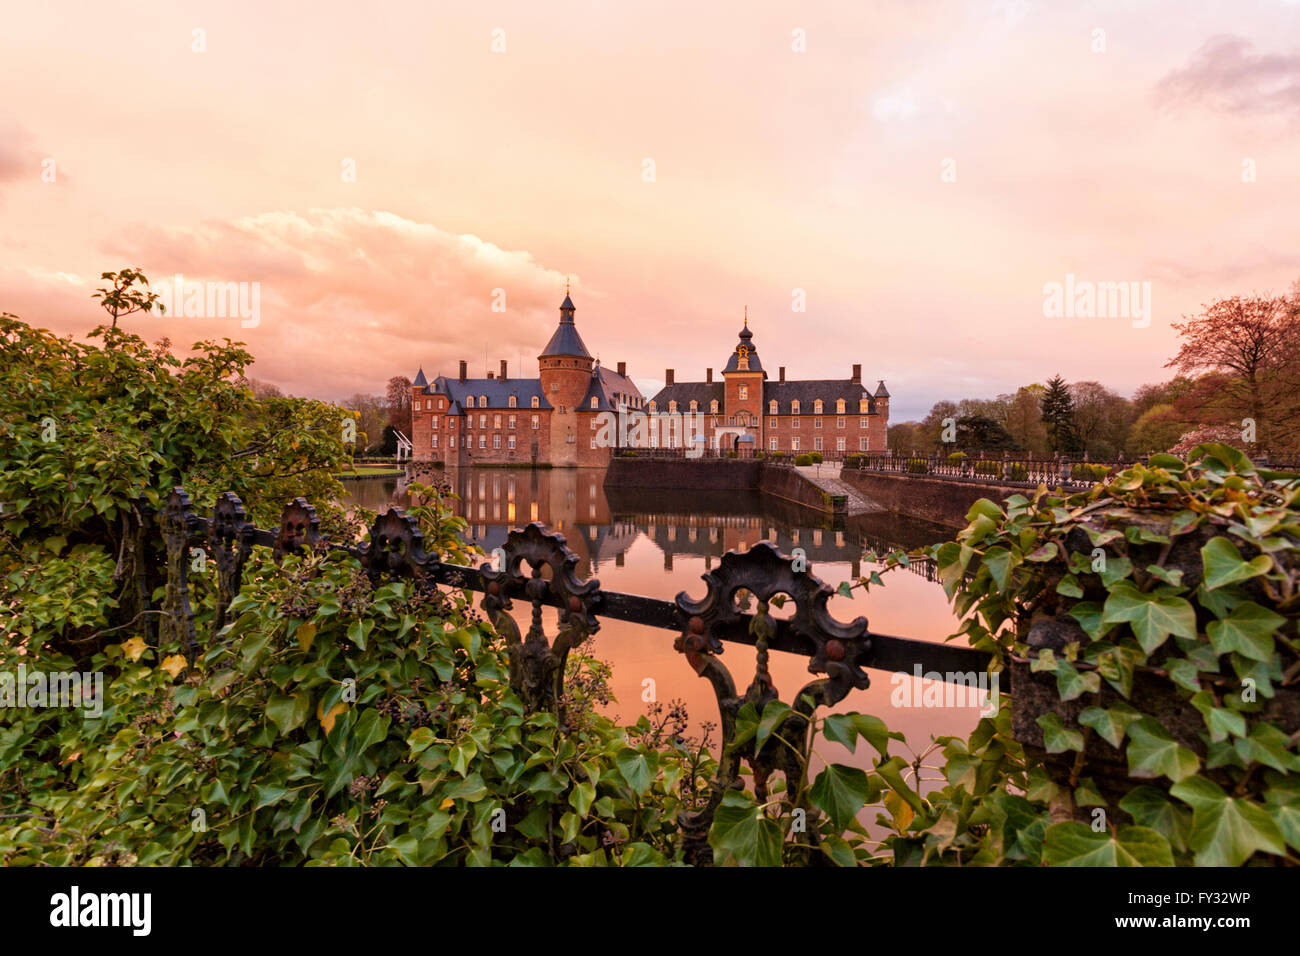 Castle Anholt at Isselburg in the Lower Rhine region at sunset - Stock Image